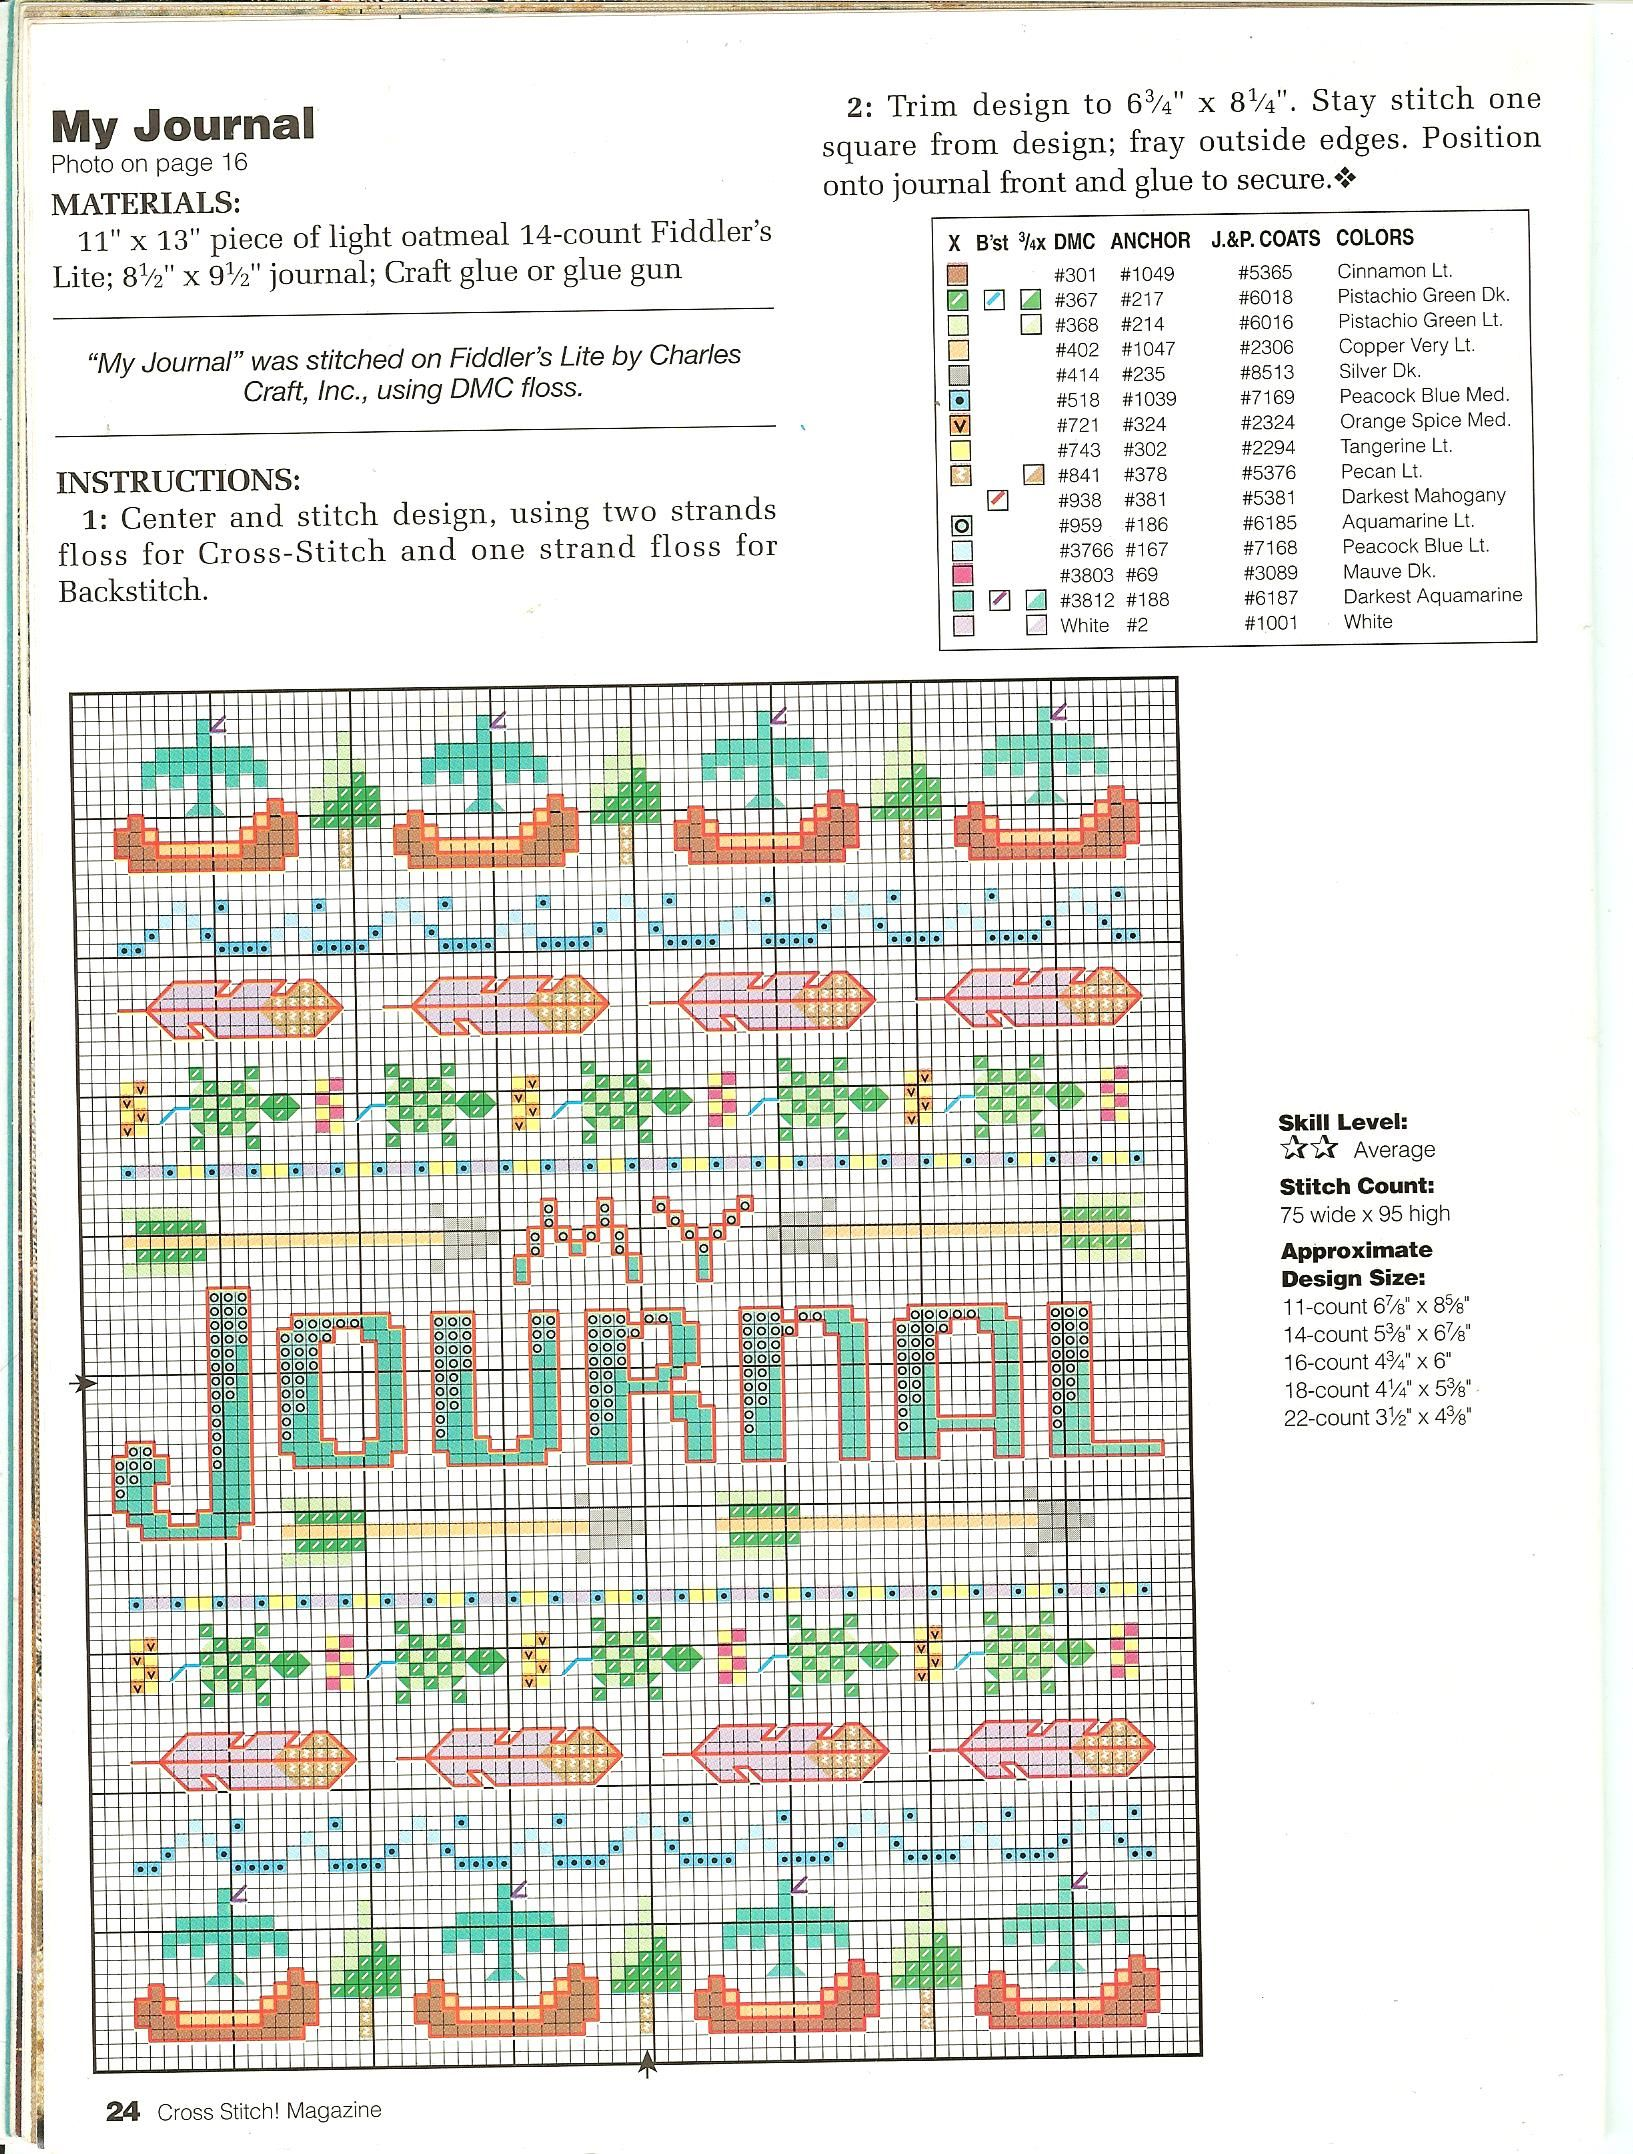 Cross Stitch Magazine Number 36 - Page 23 journal instructions